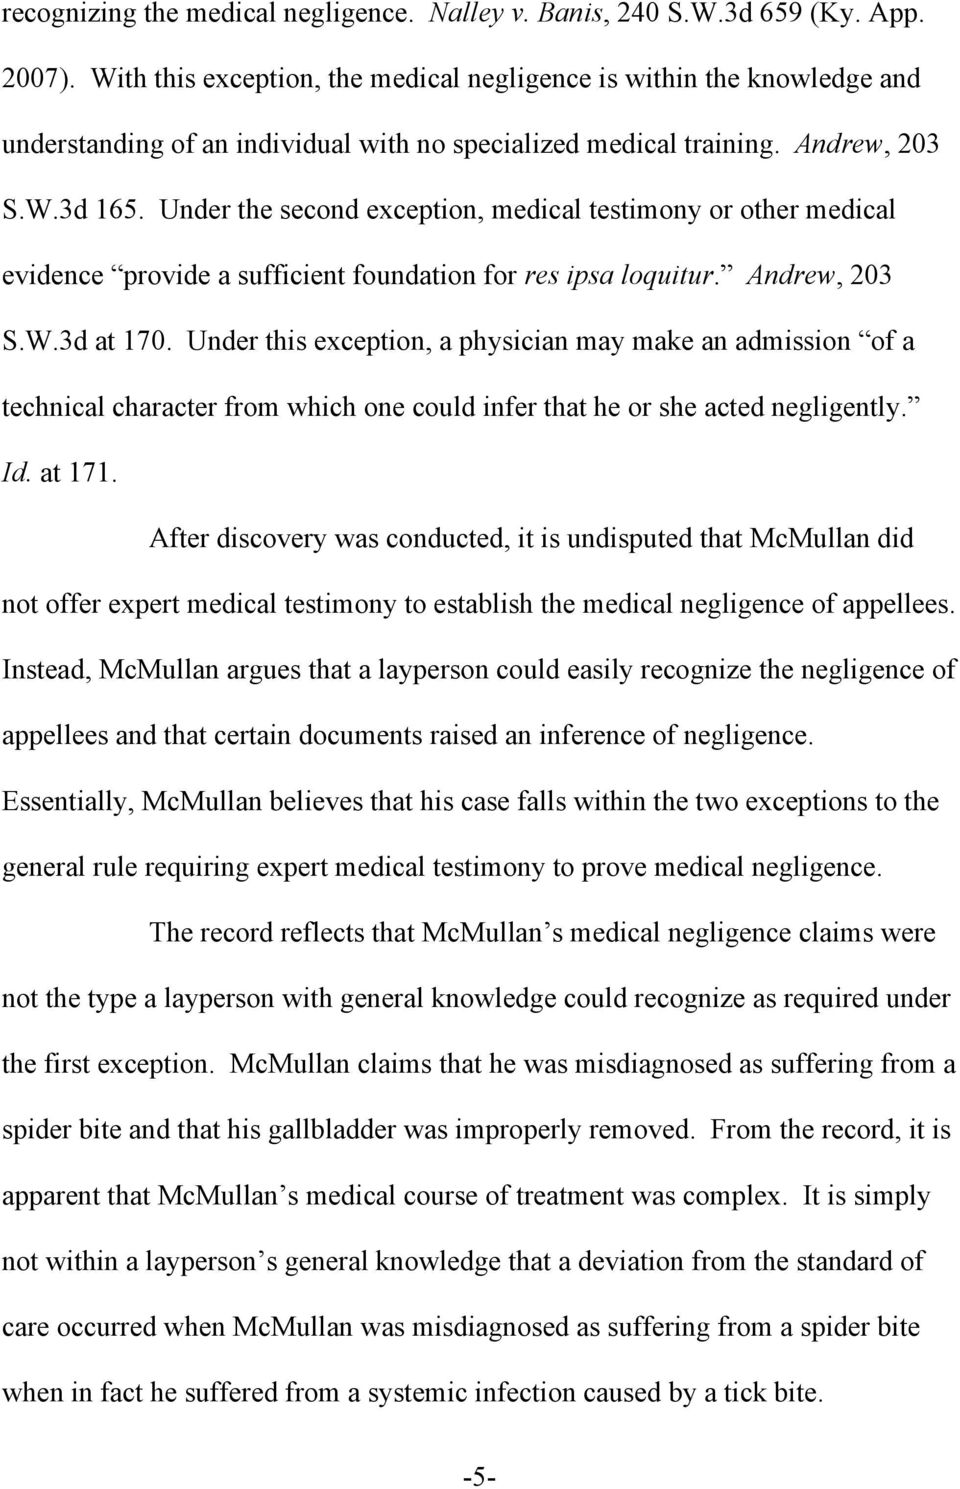 Under the second exception, medical testimony or other medical evidence provide a sufficient foundation for res ipsa loquitur. Andrew, 203 S.W.3d at 170.